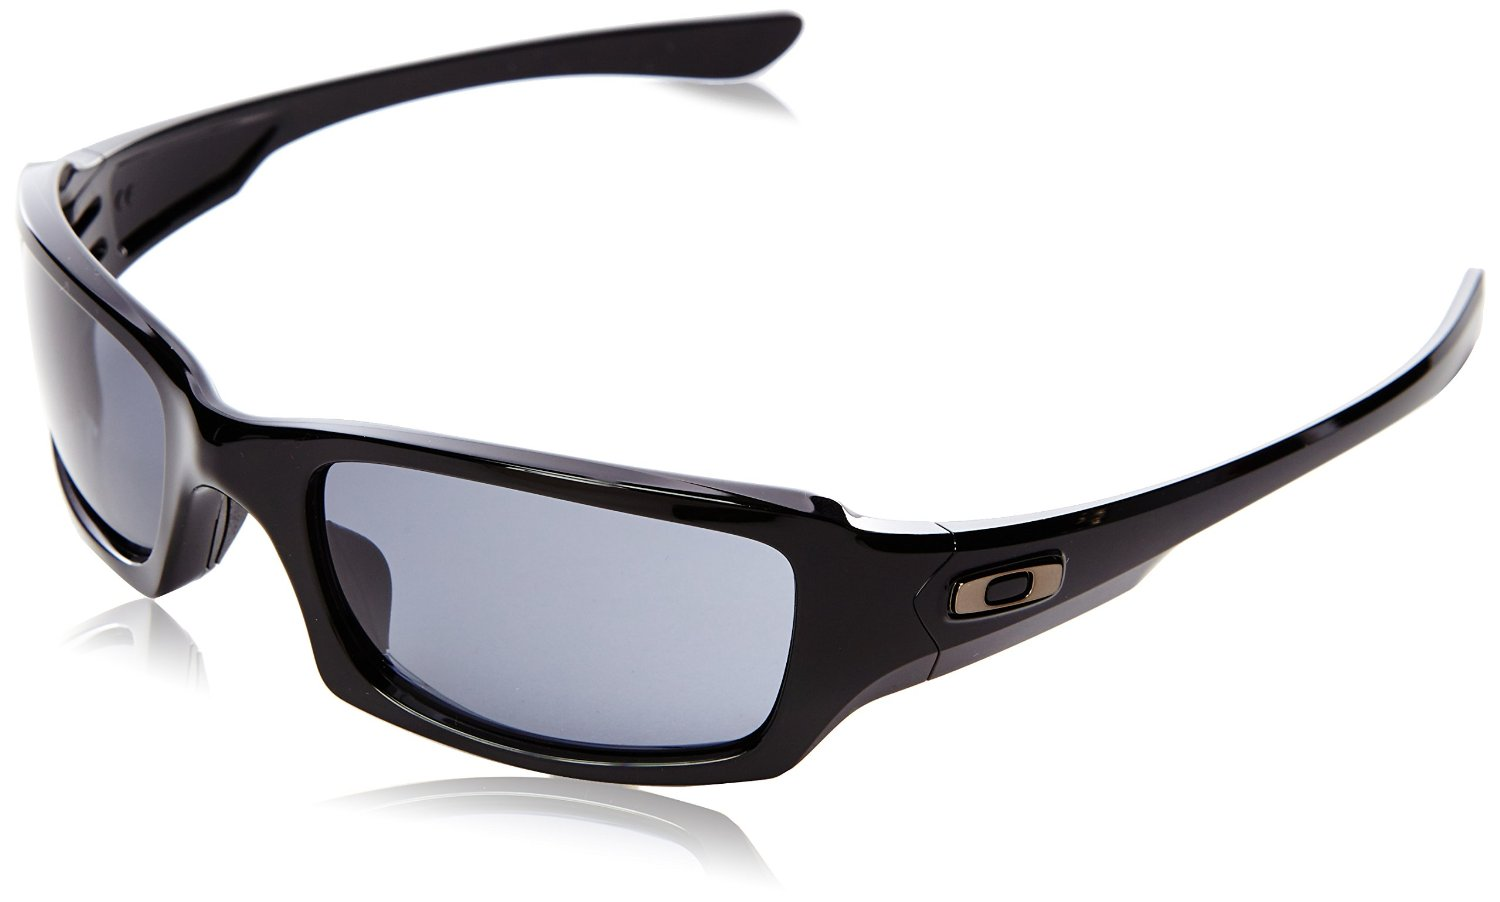 Oakley Fives Semi-Square Sunglasses